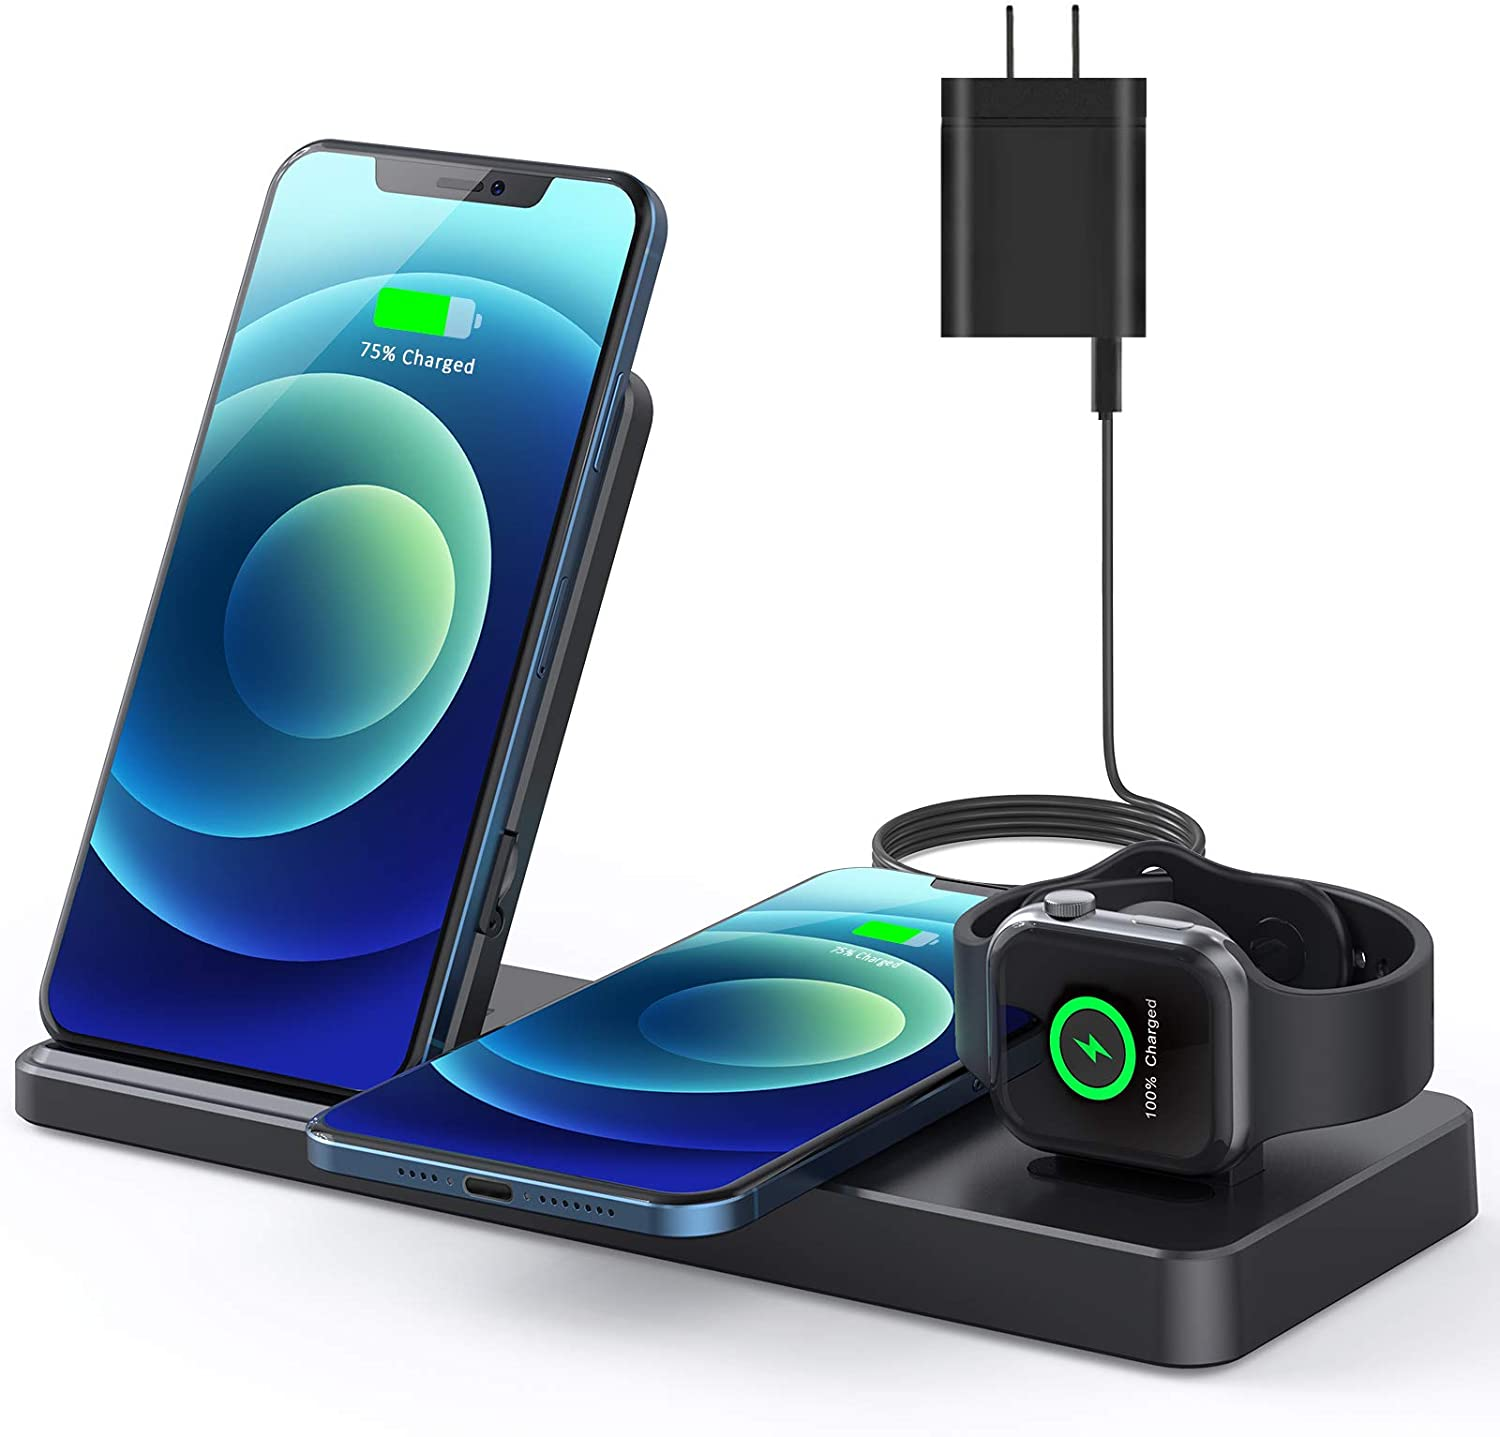 QI-EU Wireless Charger, 24W Wireless Charging Station Compatible with iPhone 12/12 pro/ 12 mini/11/11 Pro Max/Se/X/,Adjustable Charging Stand for iWatch SE/6/5/4/3 Airpods 2/ Pro with Fast Adapter